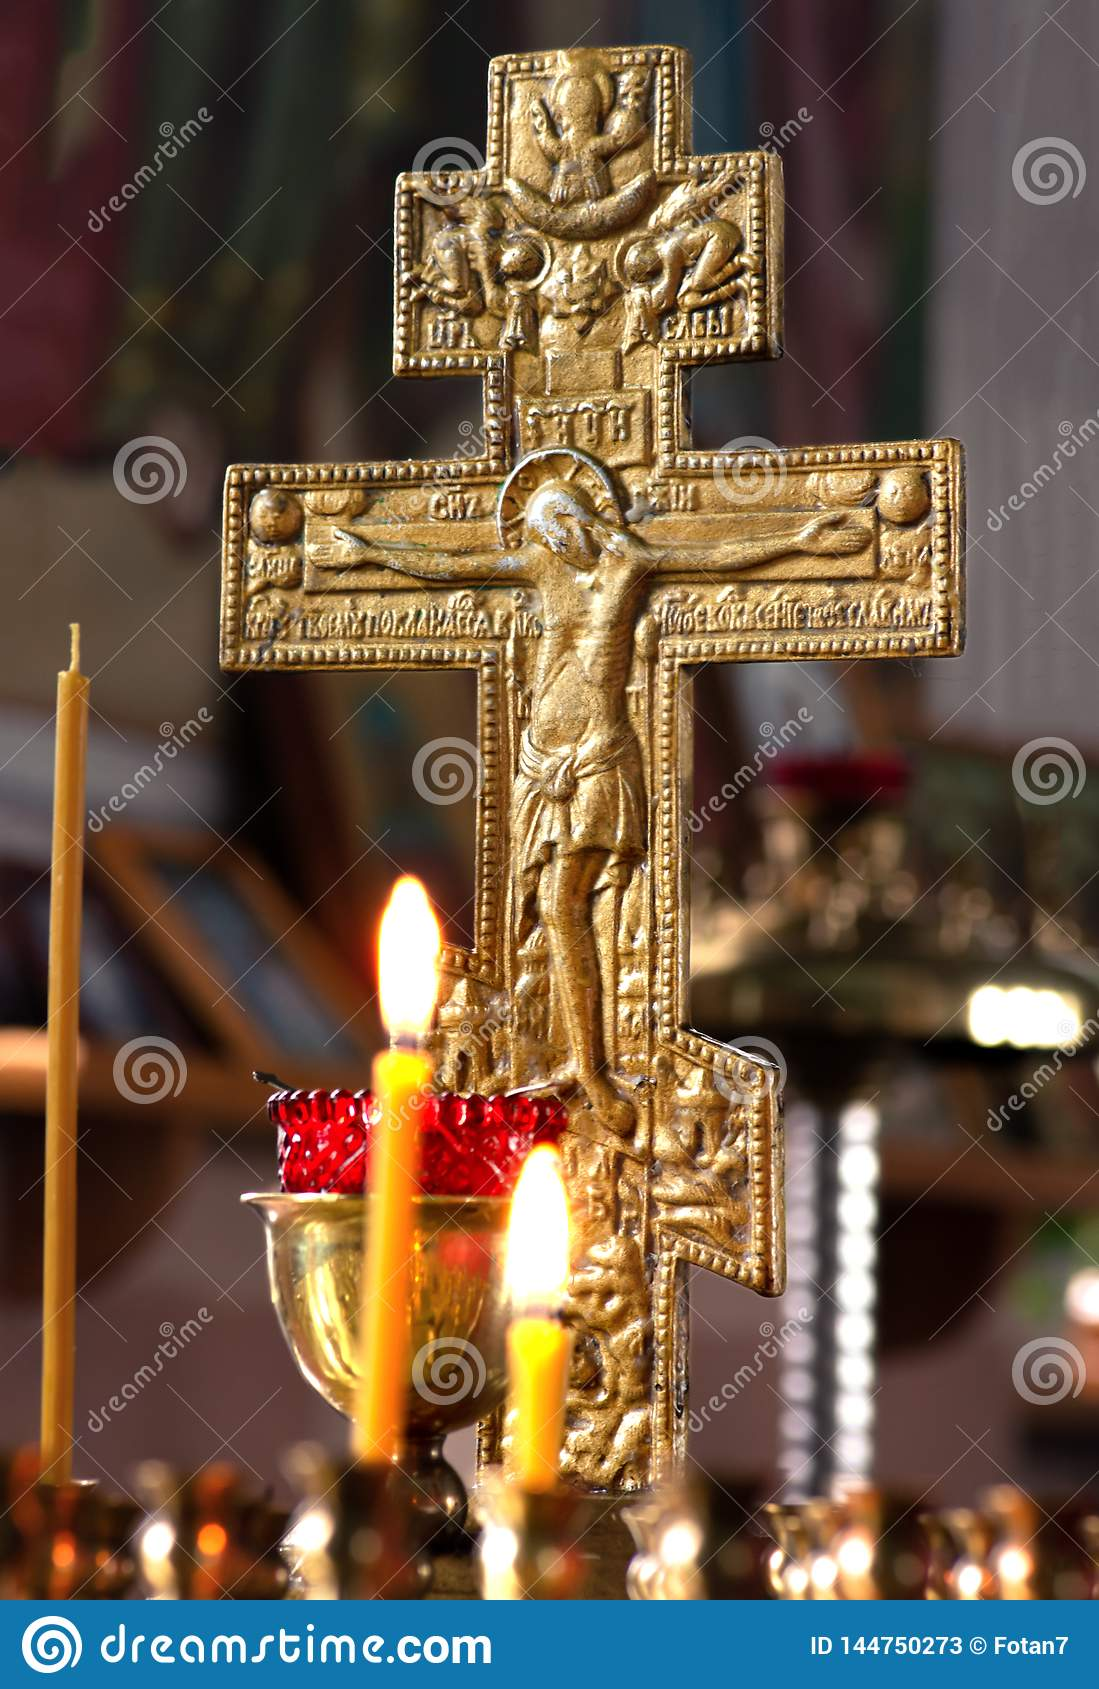 Russia, Ryazan 1 Feb 2019 - candles on the background of a gilded cross in the Orthodox Church natural light